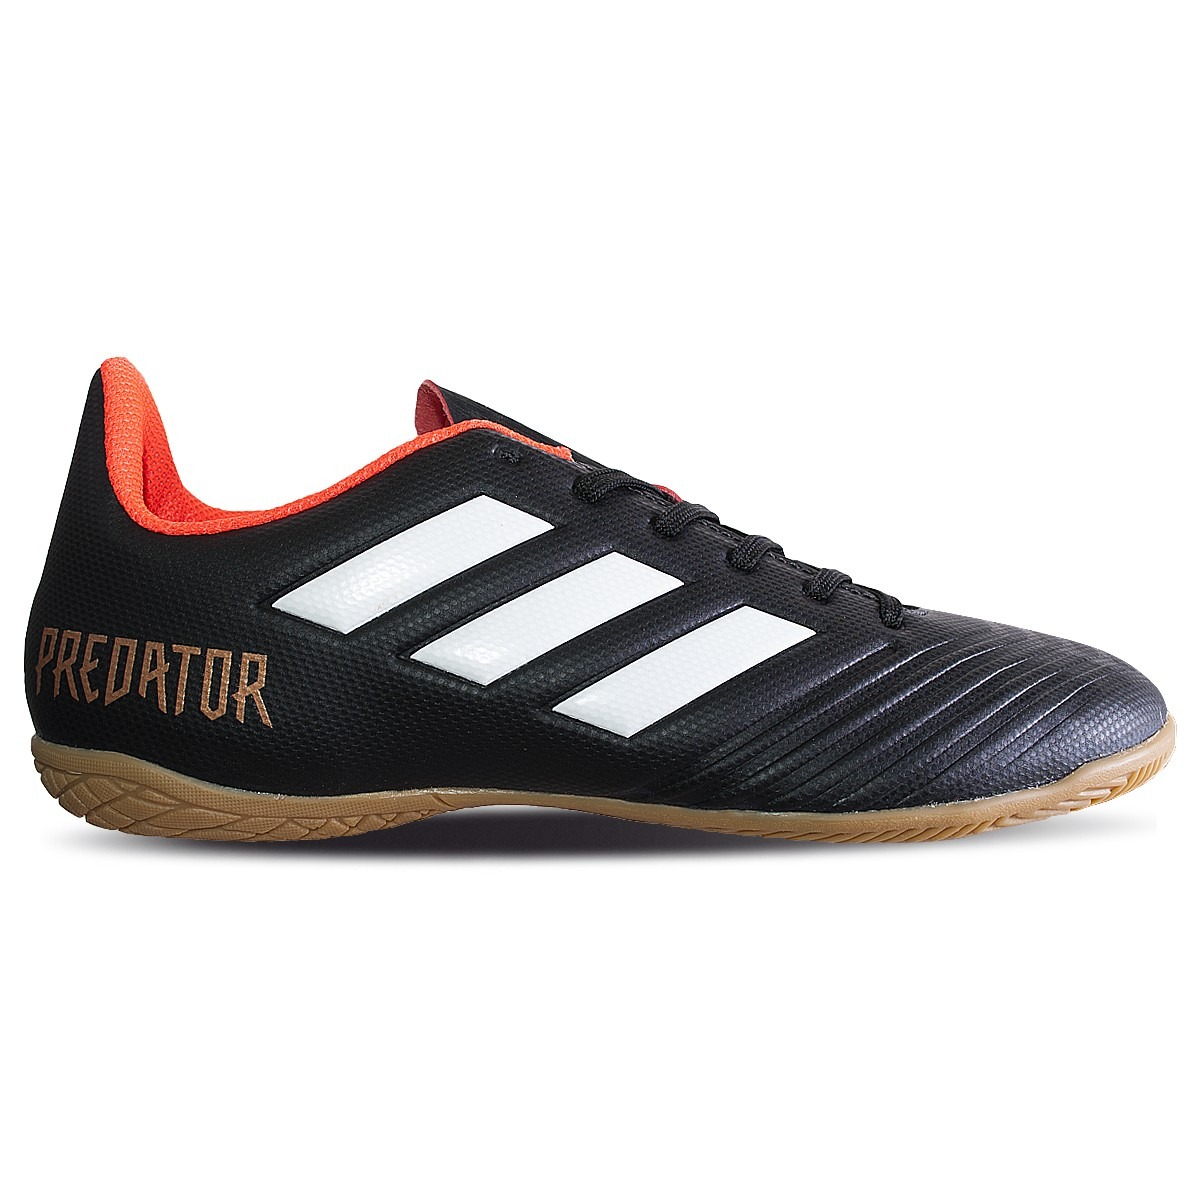 ... where can i buy chuteira adidas predator 2018 futsal 8549b 7e8a7 d8982d5cba118